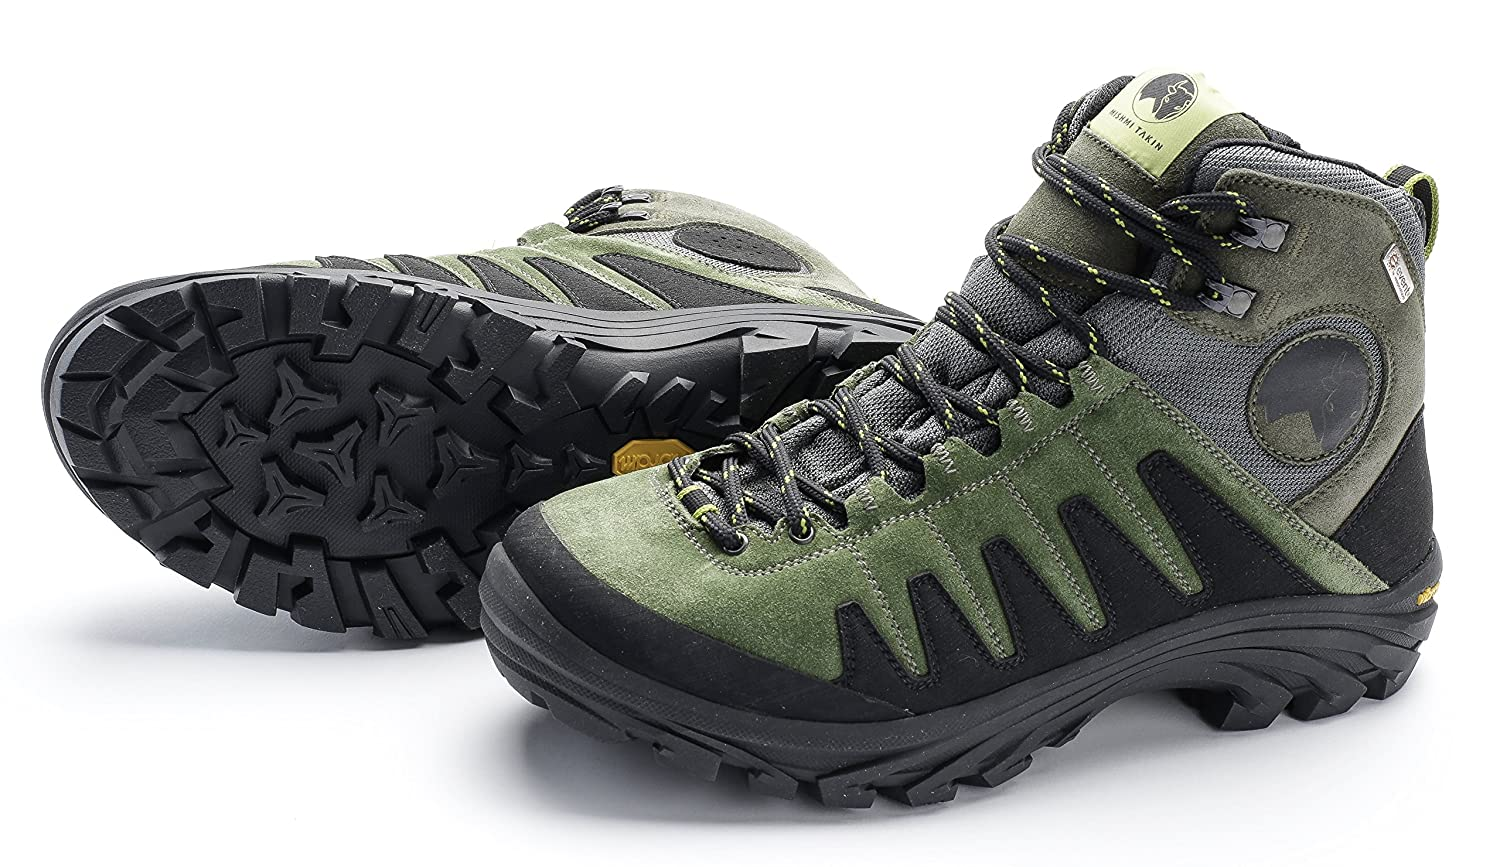 Mishmi Takin Kameng Mid Event Waterproof Hiking Boot B06XFN8KYZ EU 46 / US M 12.5|Moss Green